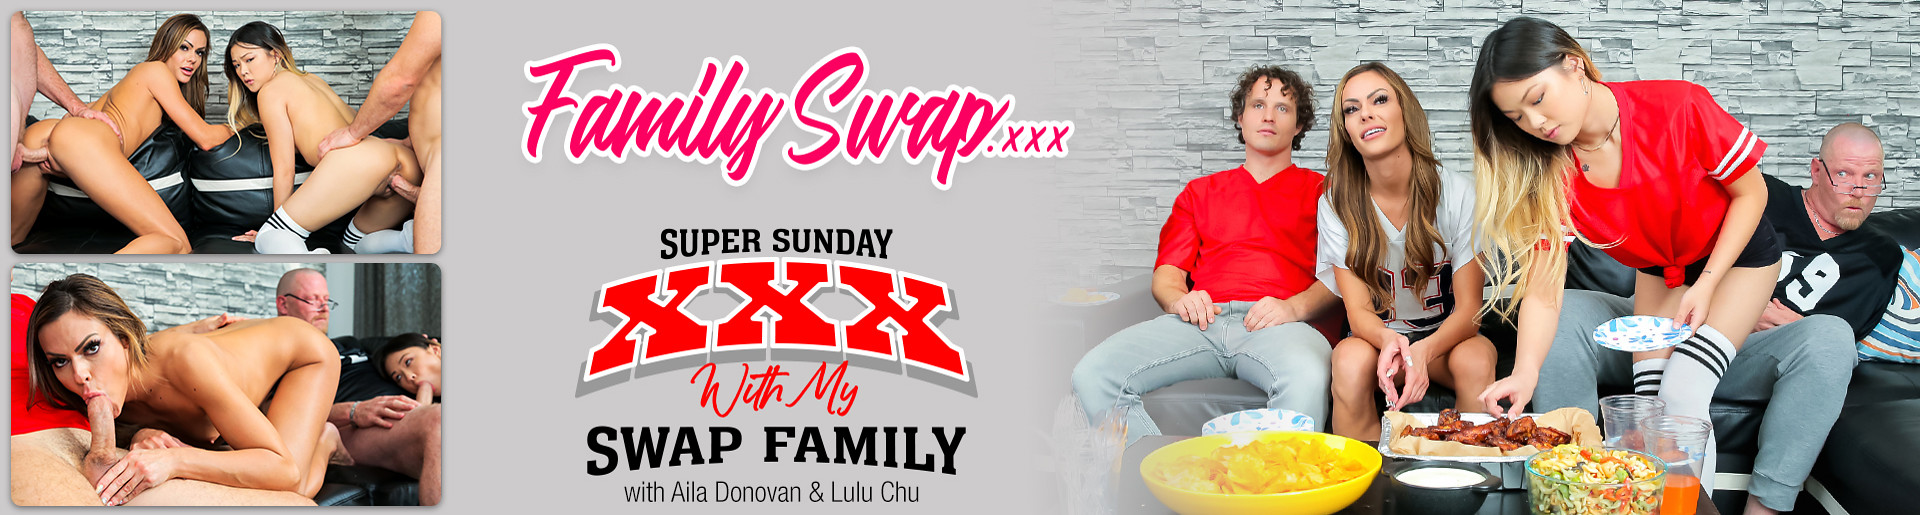 Super Sunday with My Swap Family